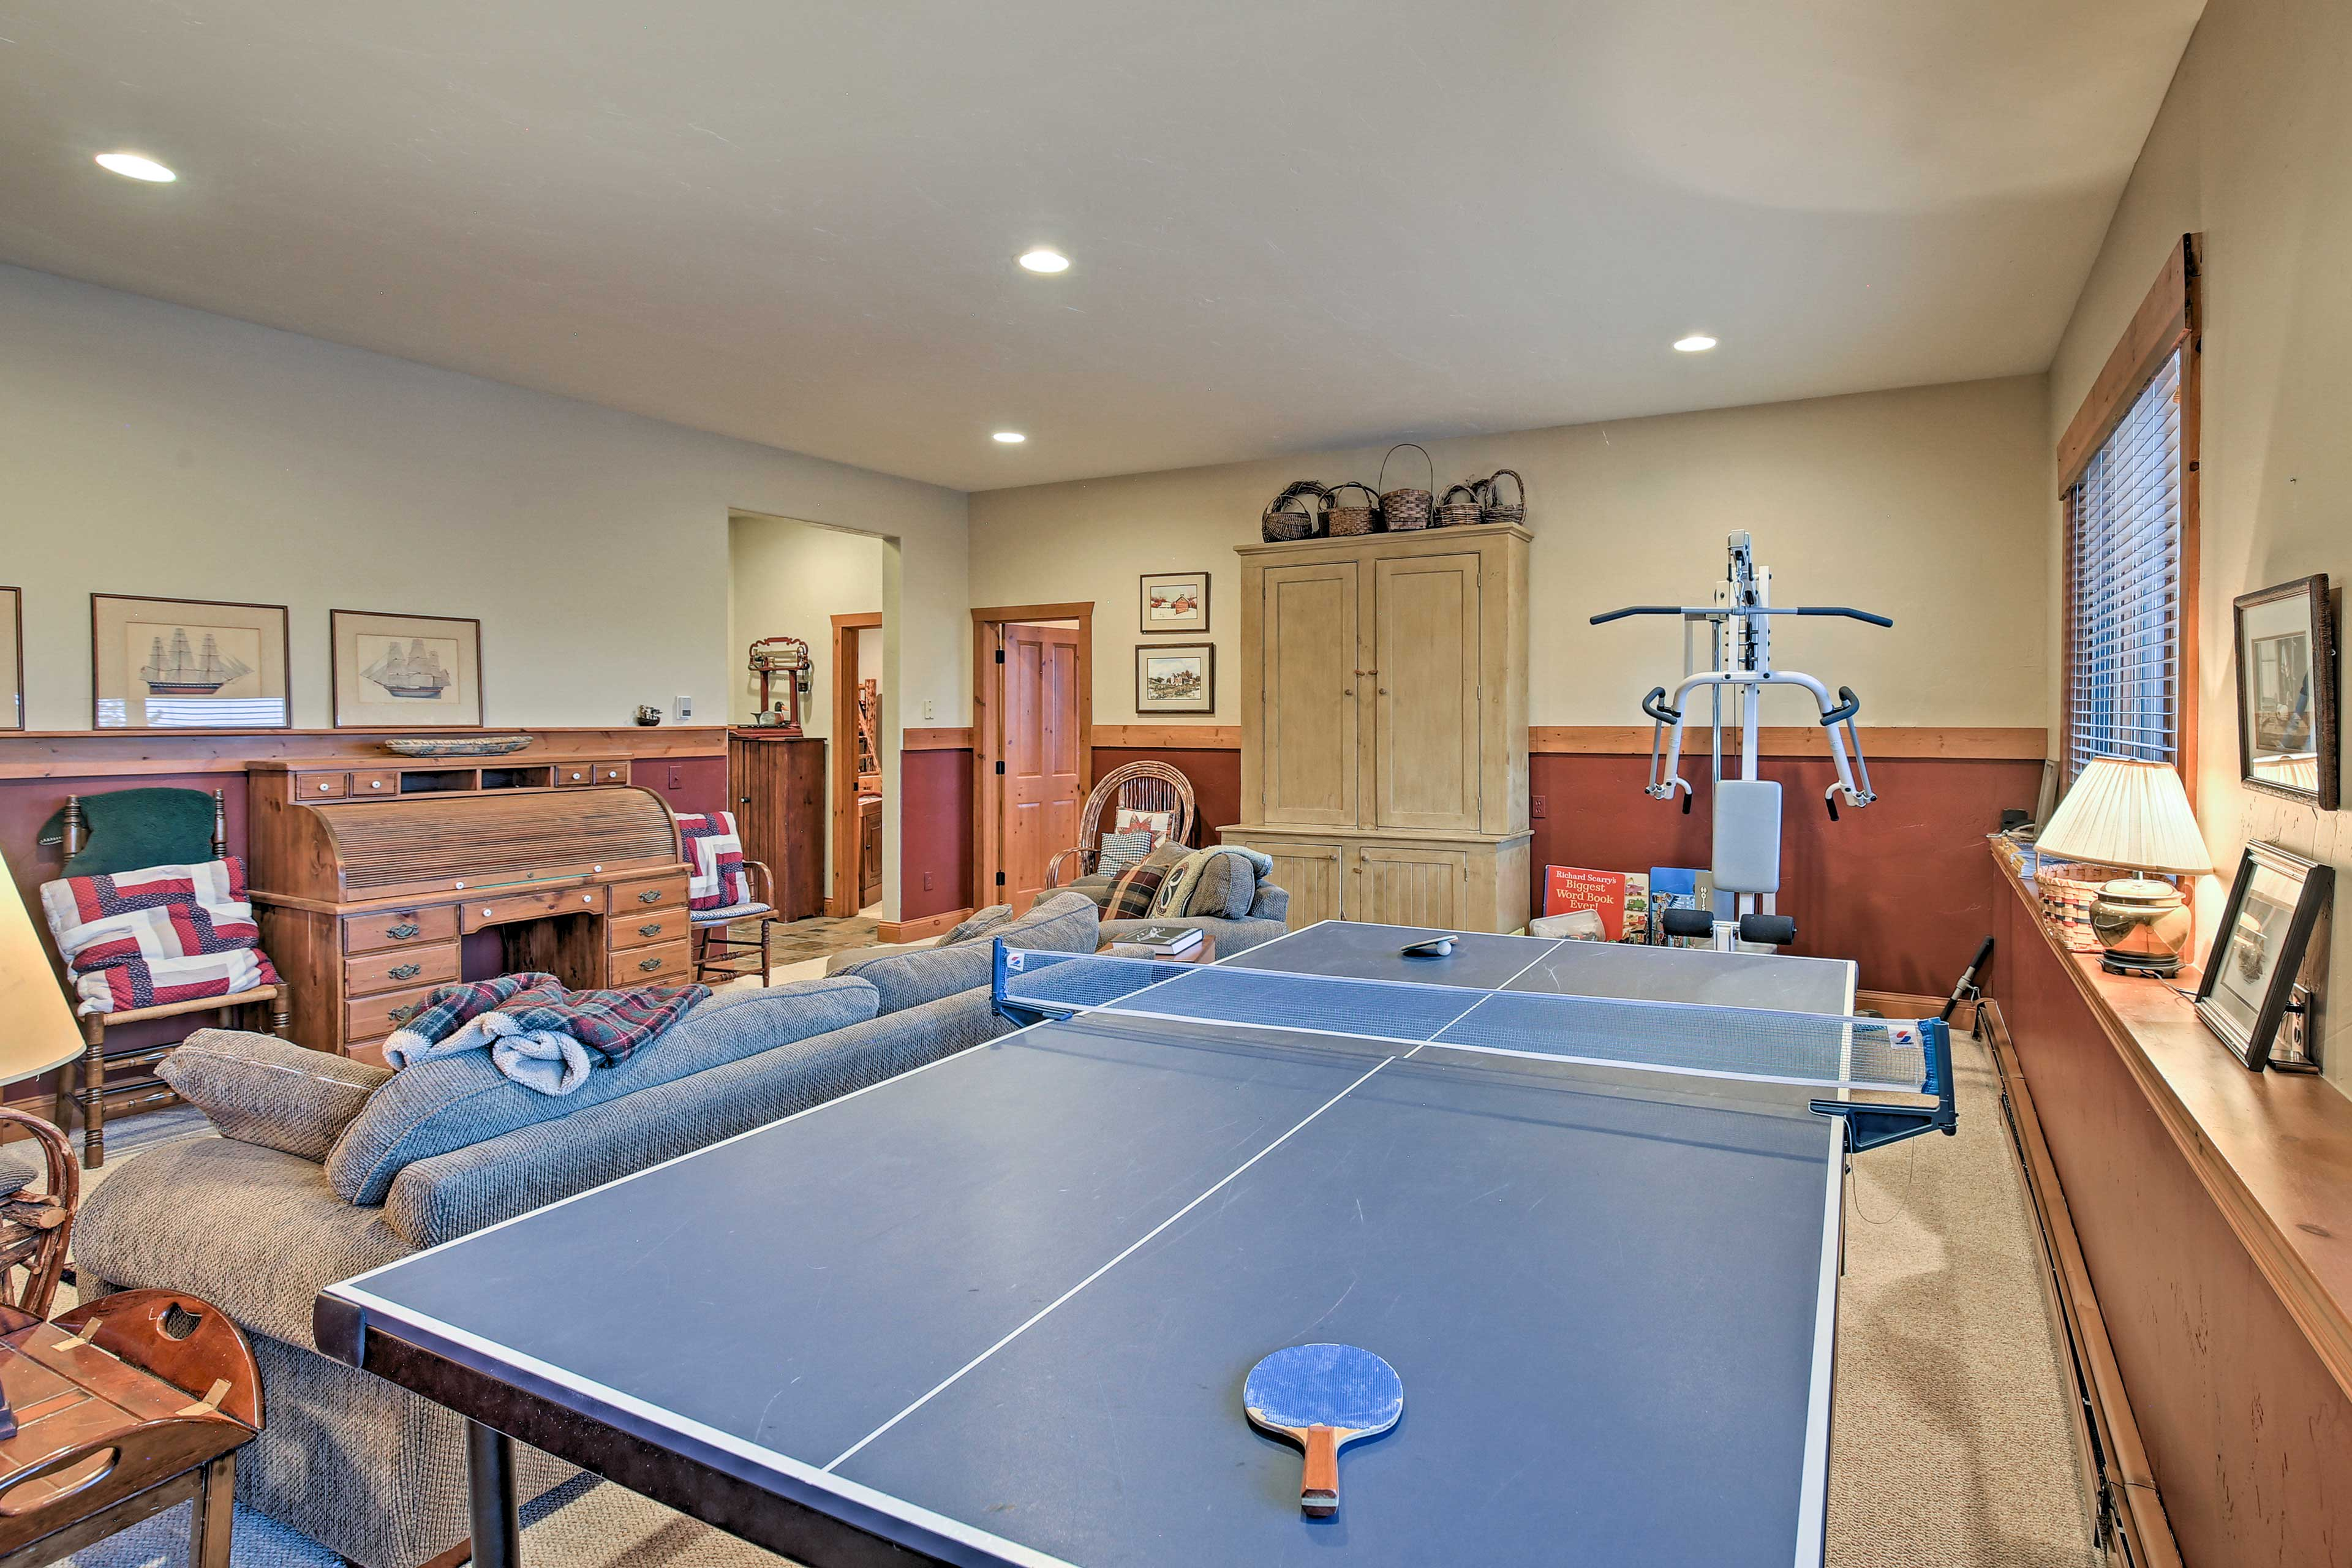 The ping pong table is sure to provide evening entertainment.